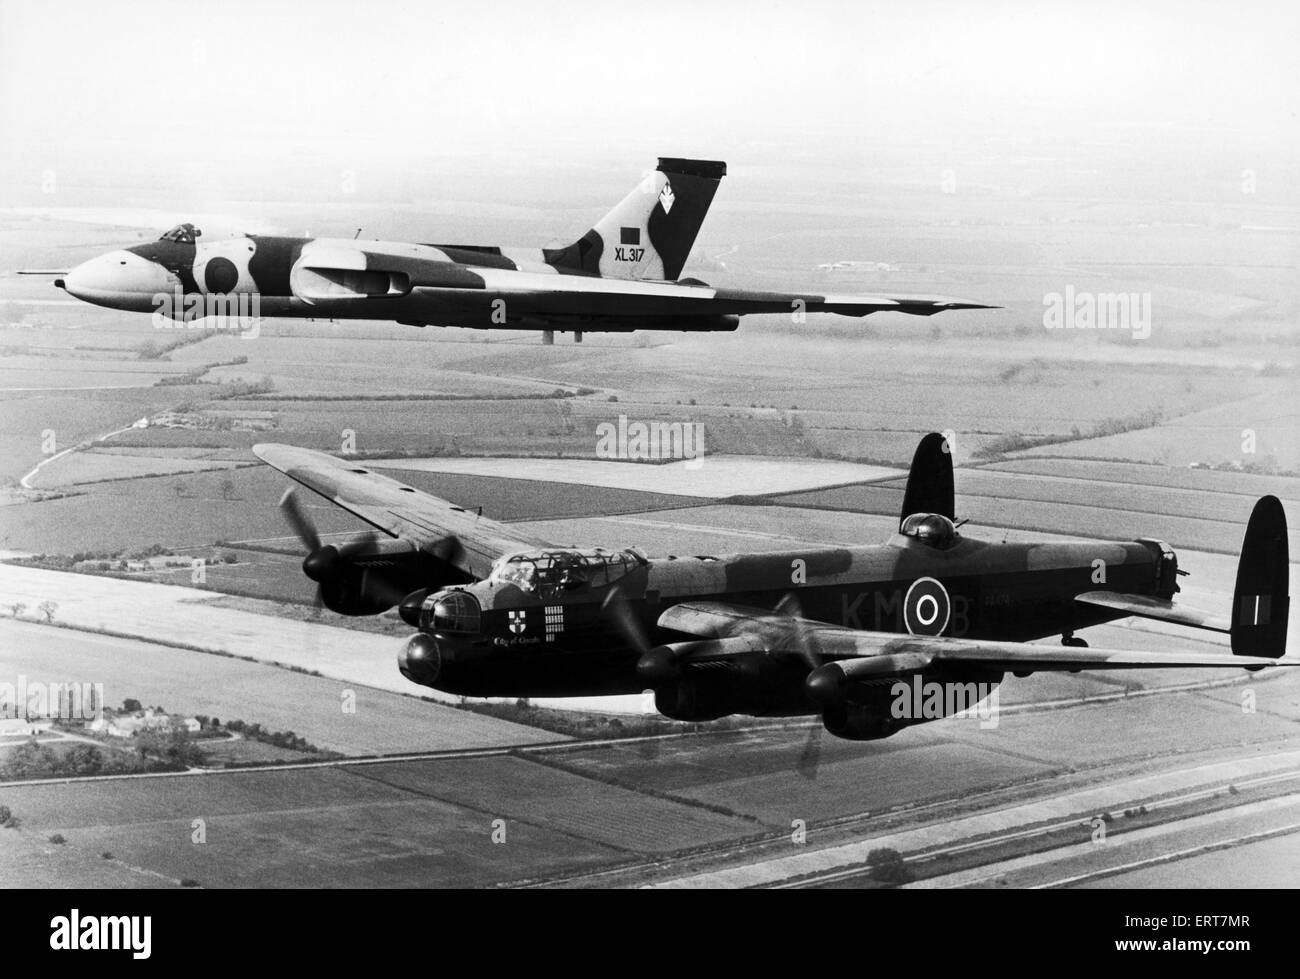 Avro Lancaster bomber commemorative flight over Derwent Dam, seen here escorted by an Avro Vulcan during the Coventry - Stock Image